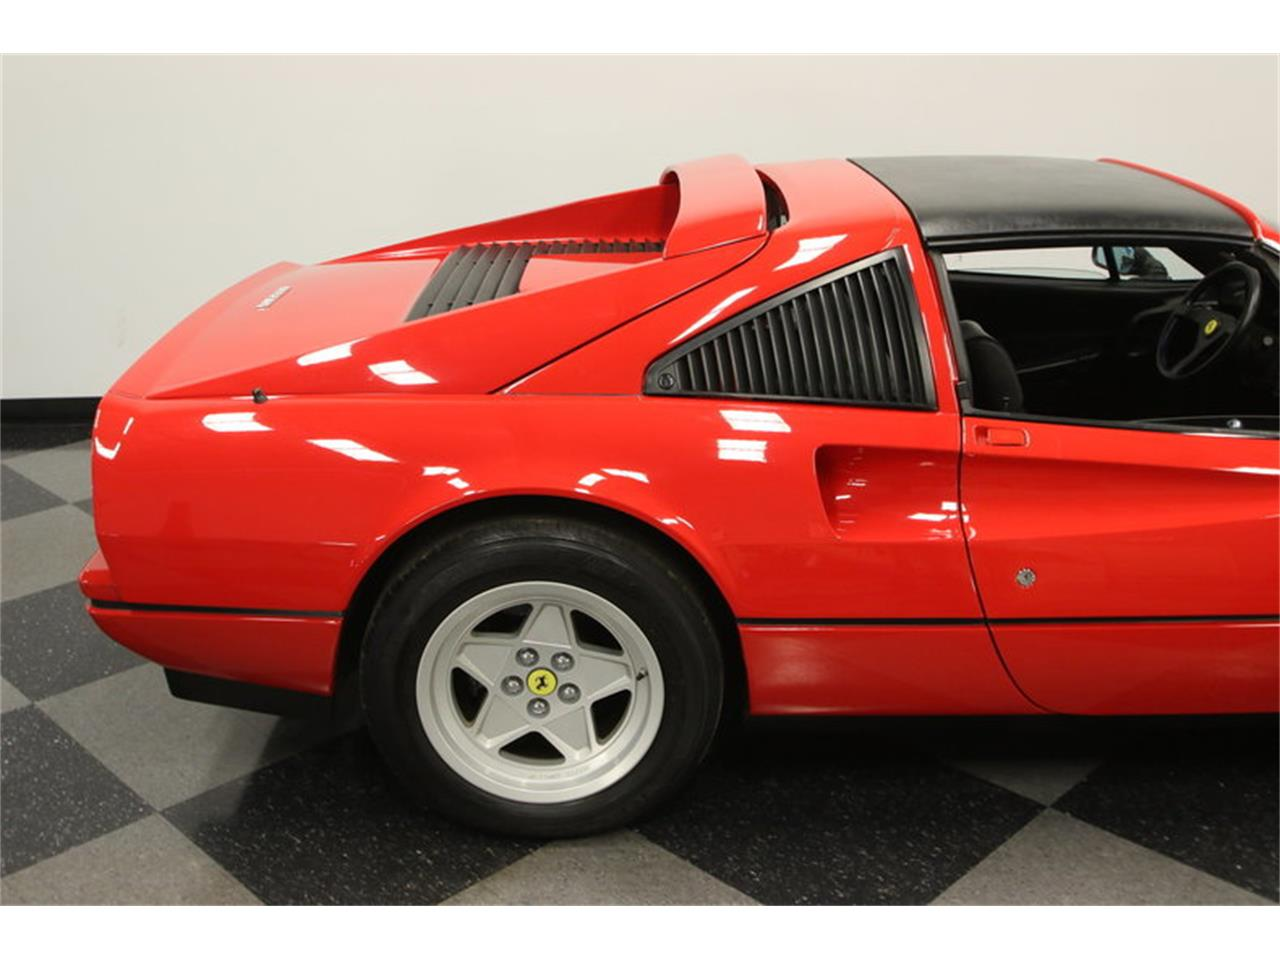 Large Picture of 1988 Ferrari 328 GTS located in Lutz Florida - $69,995.00 - MO3Z